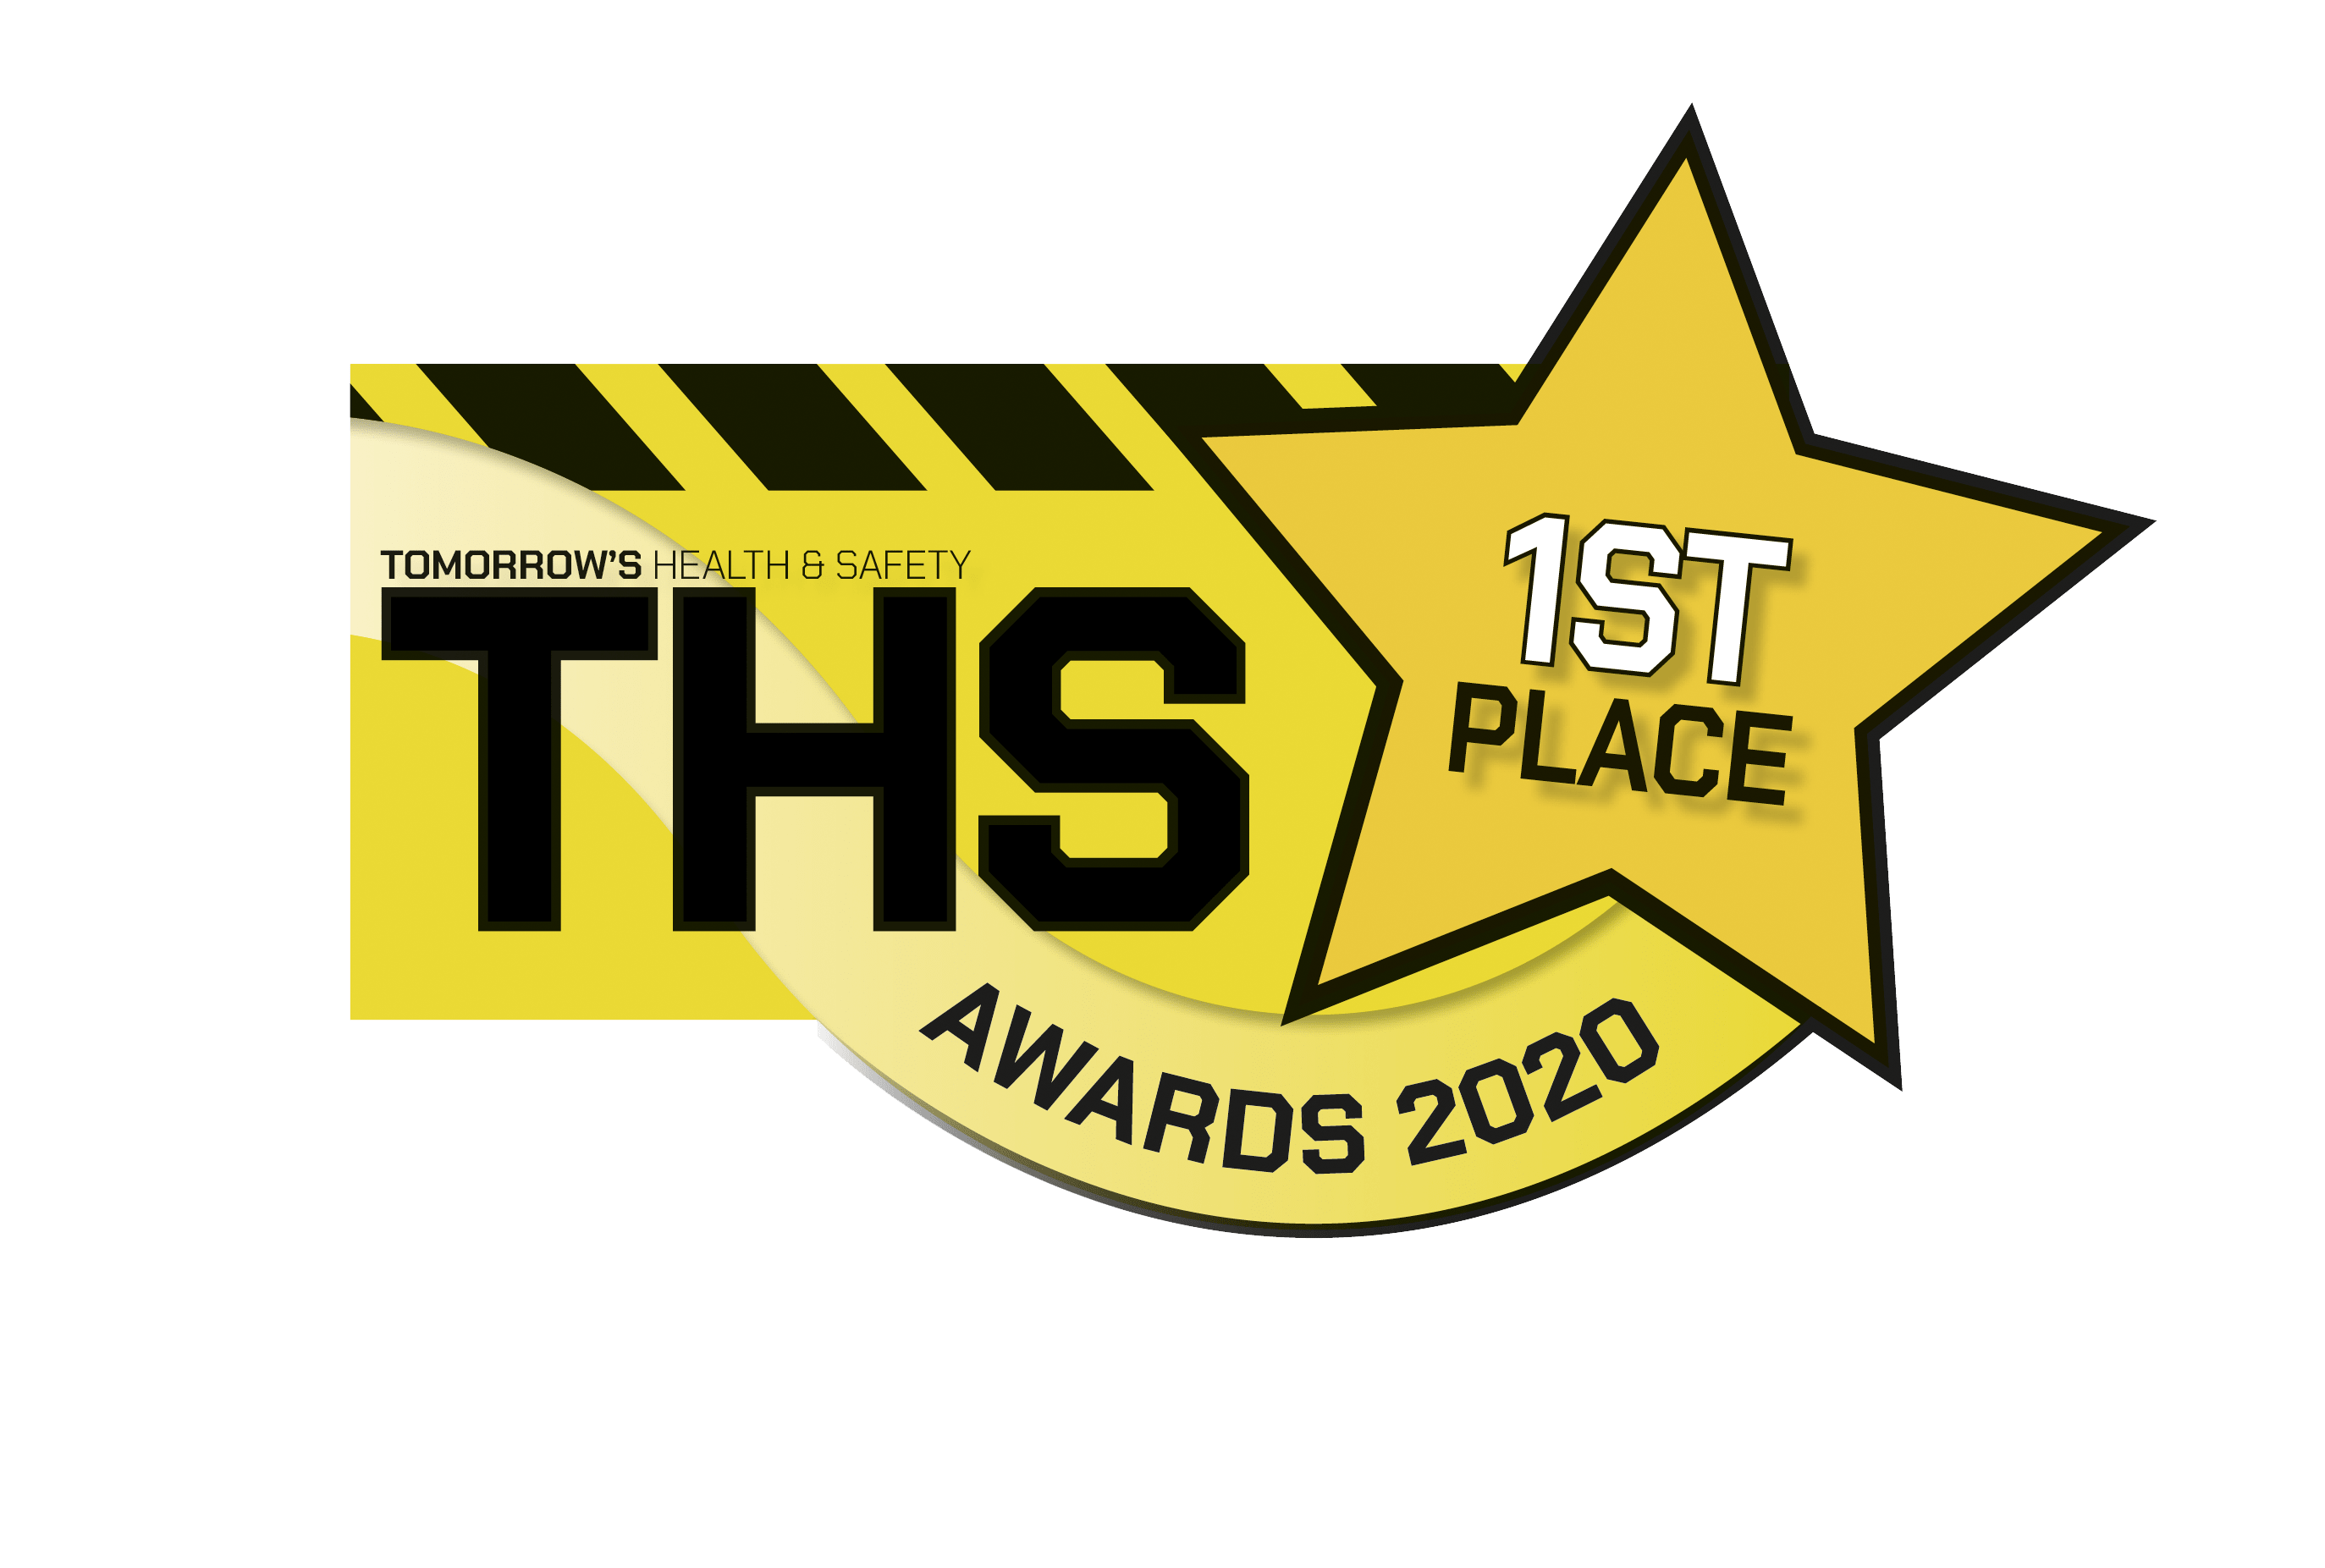 Tomorrow's health and safety star logo for first place in the 2020 awards